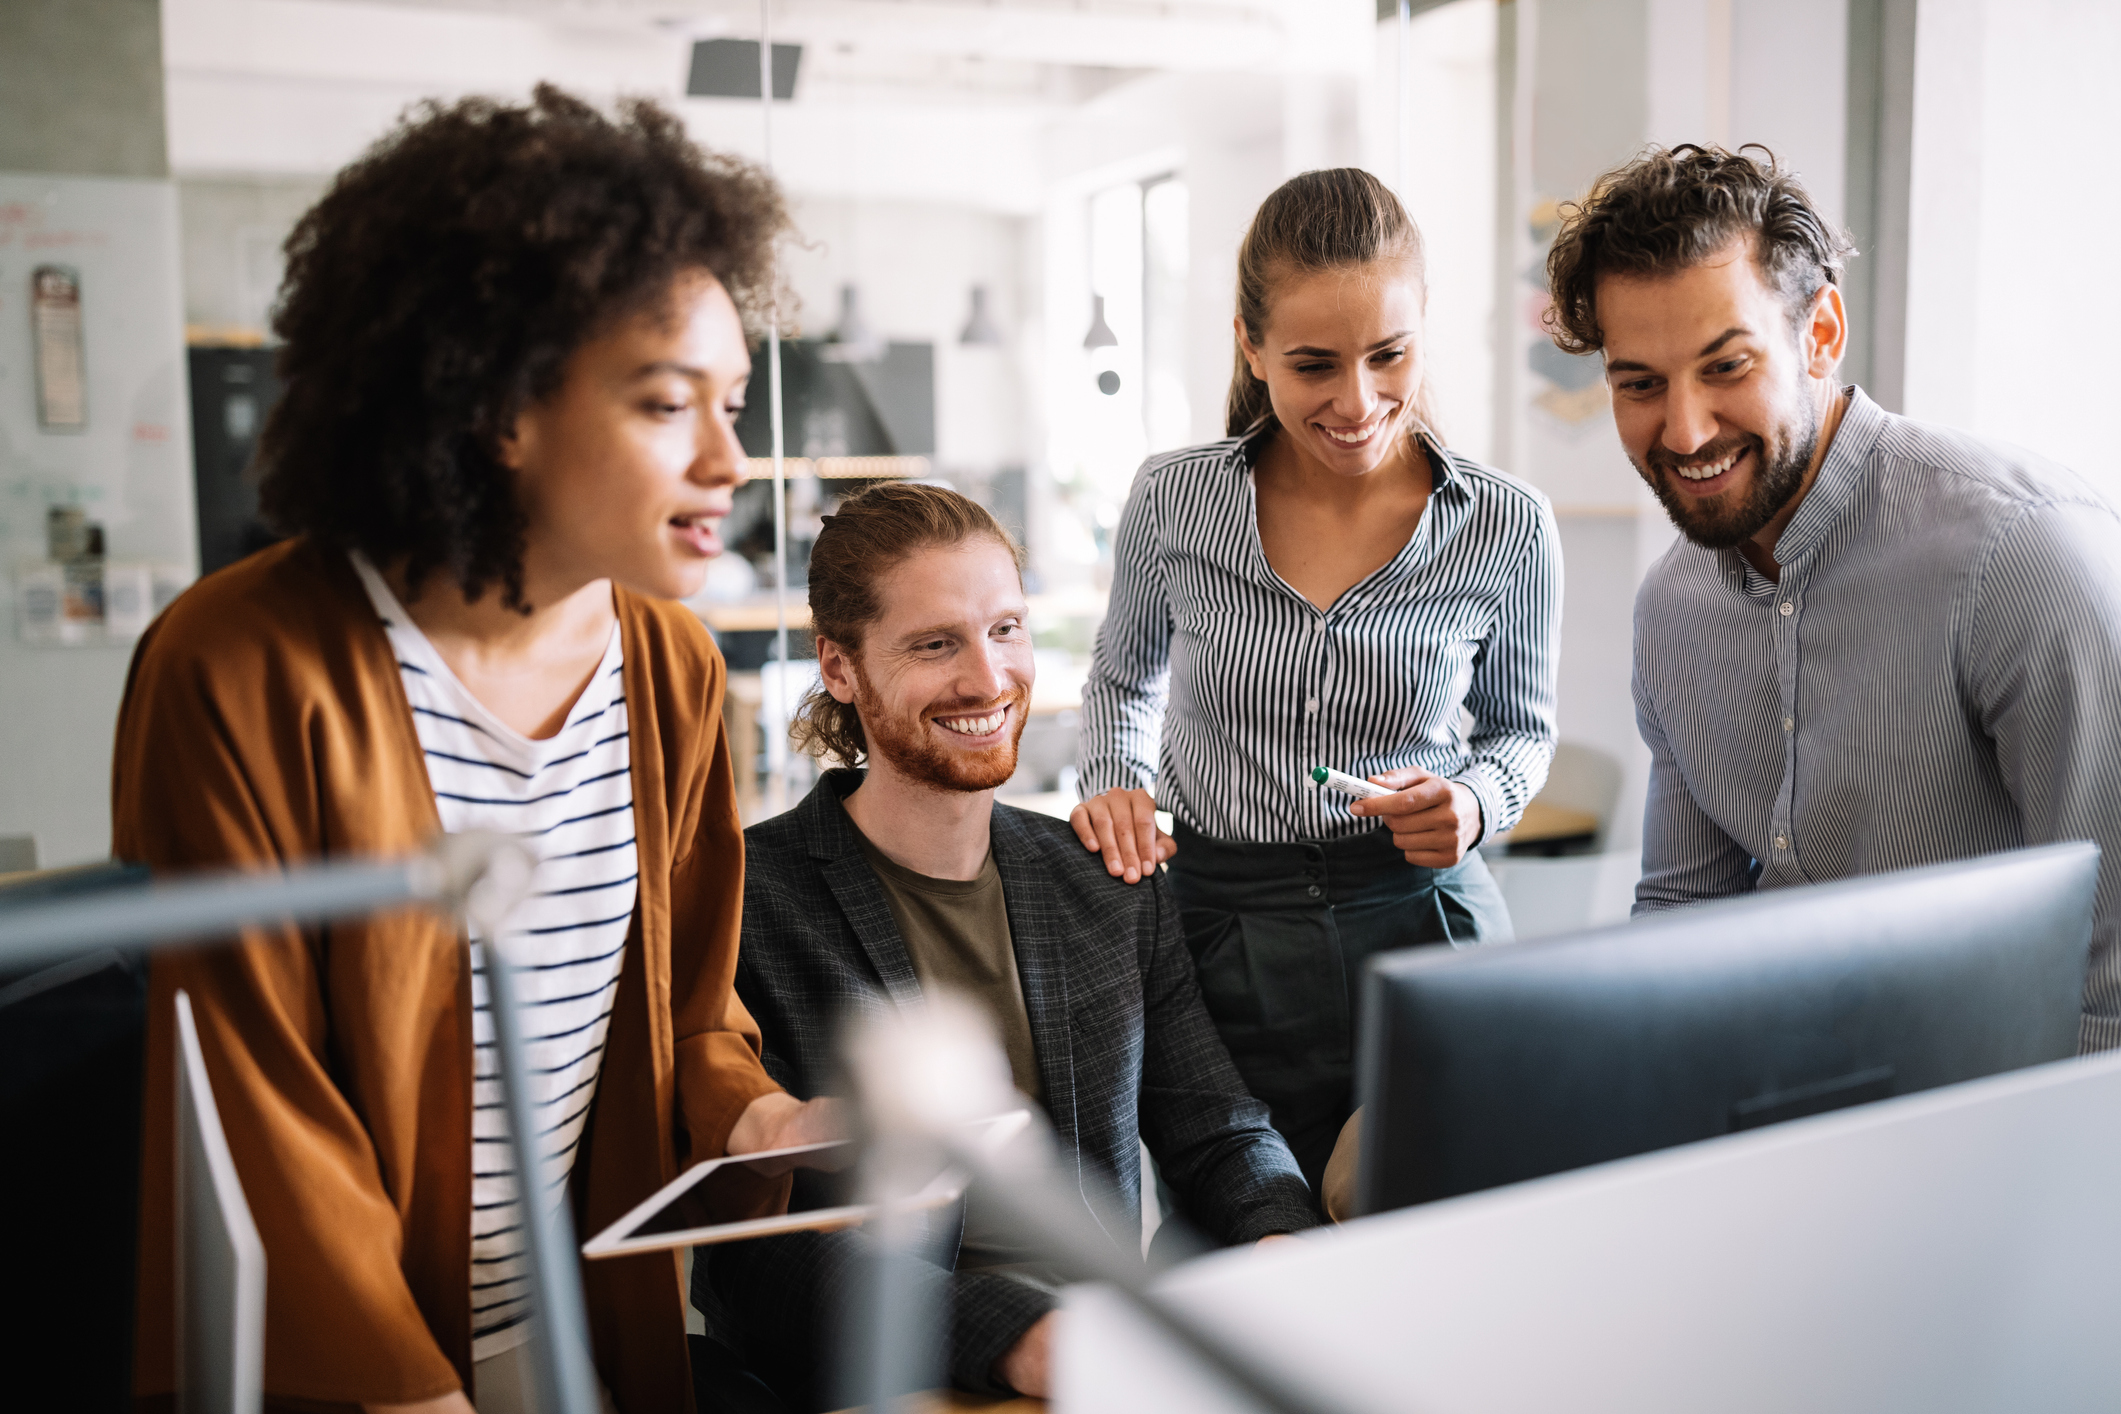 5 Tips for Improving Communication in the Workplace